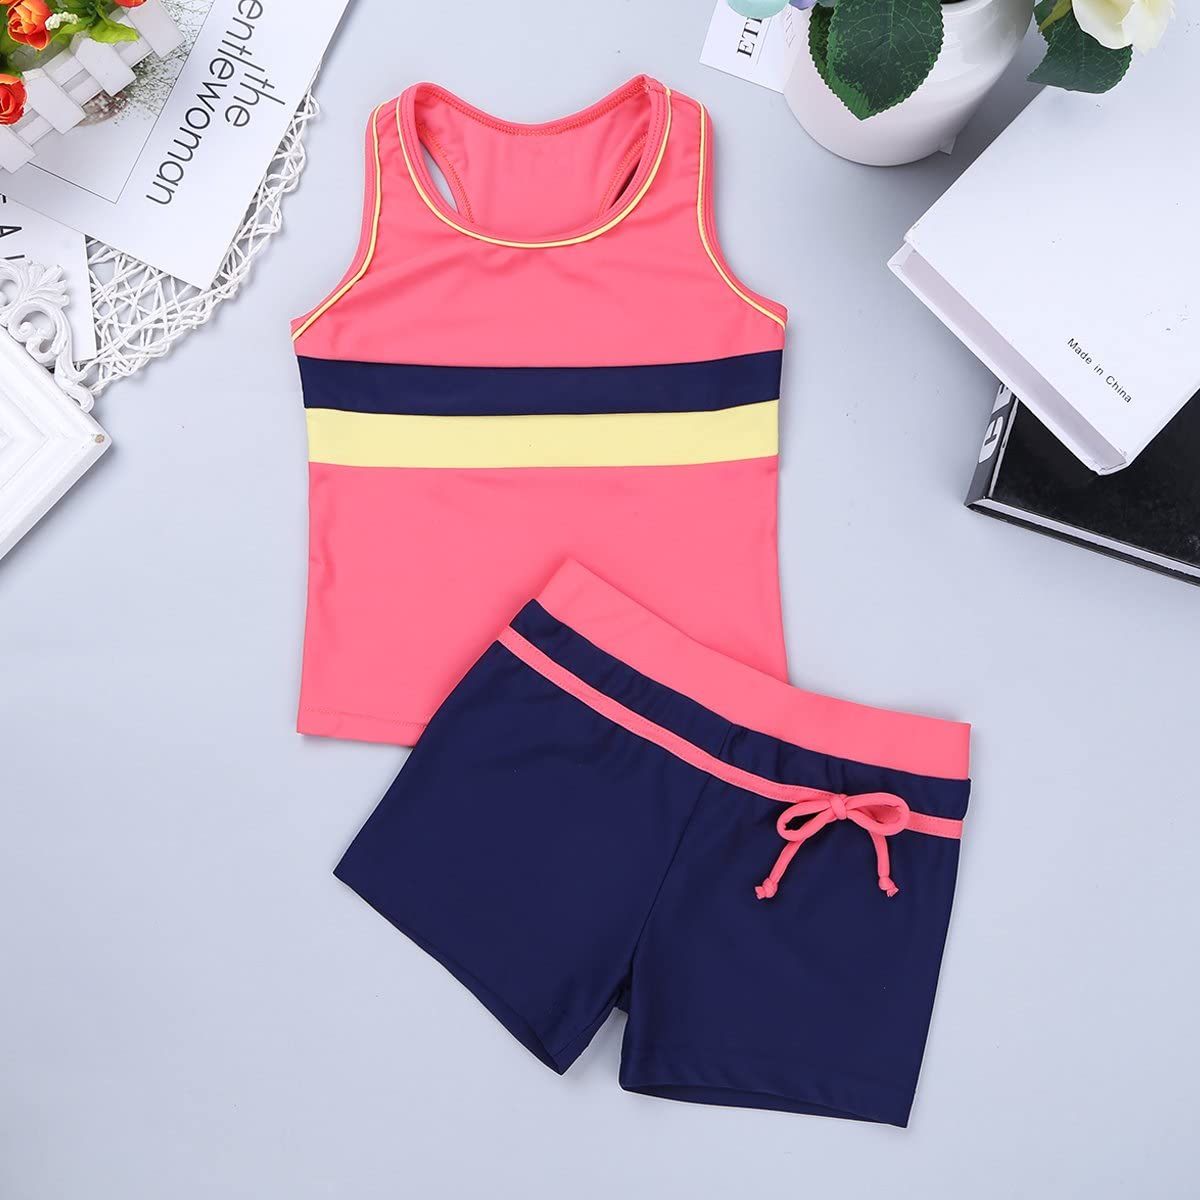 Mufeng Girls  Separates Athletic Two-Piece Swimsuit Set Summer Holiday Party Outfits Rack Back Tops with Shorts Swimwear